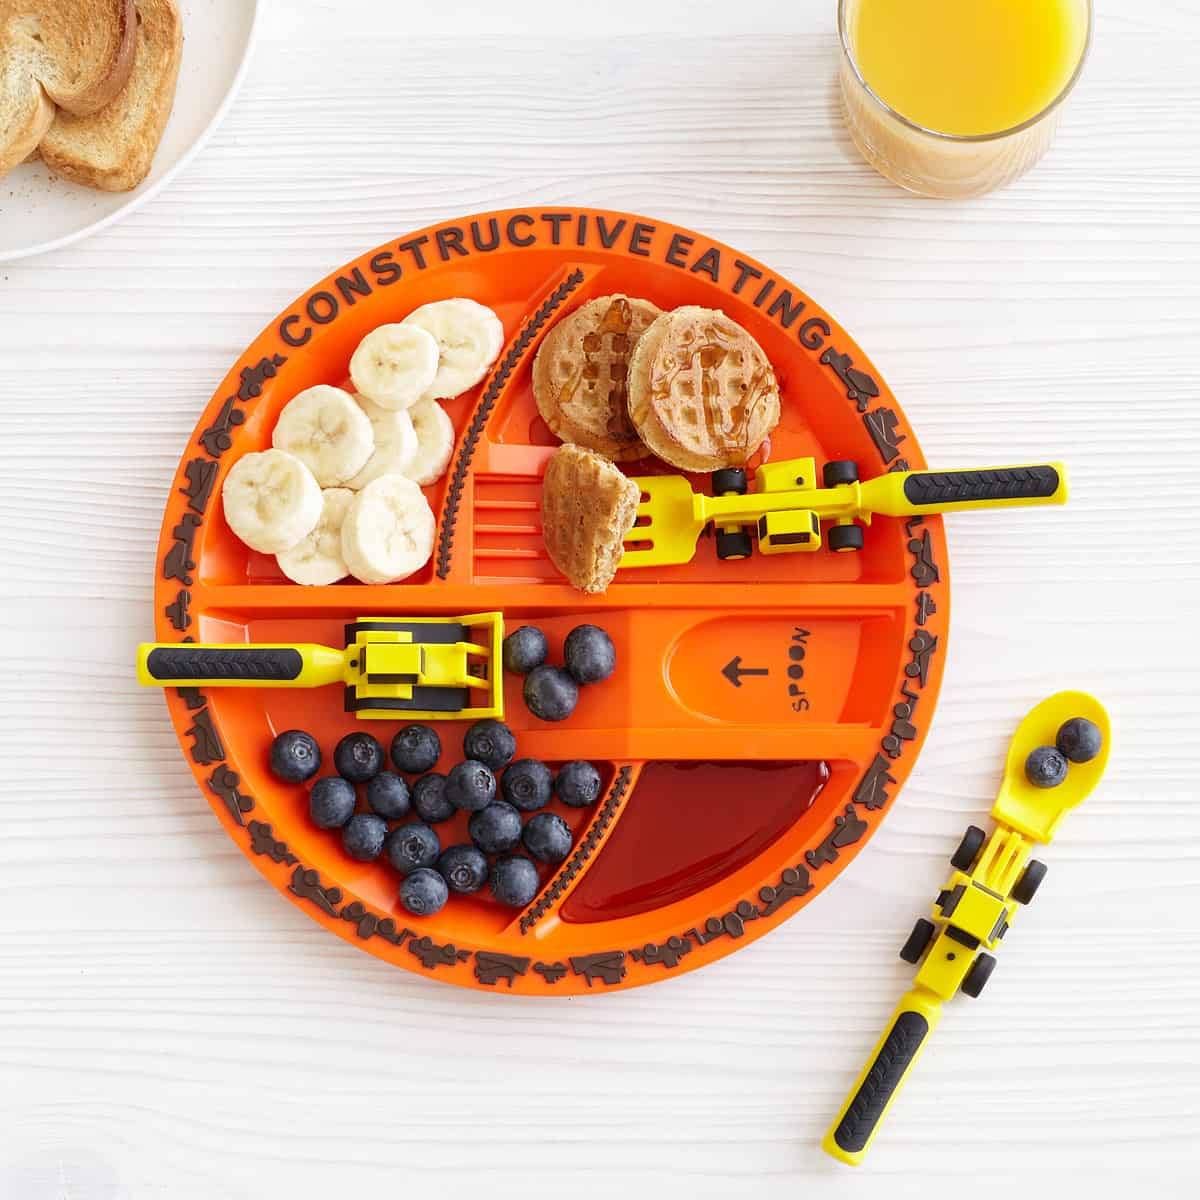 These 12 Plates For Kids Will Inspire Creativity At Mealtime